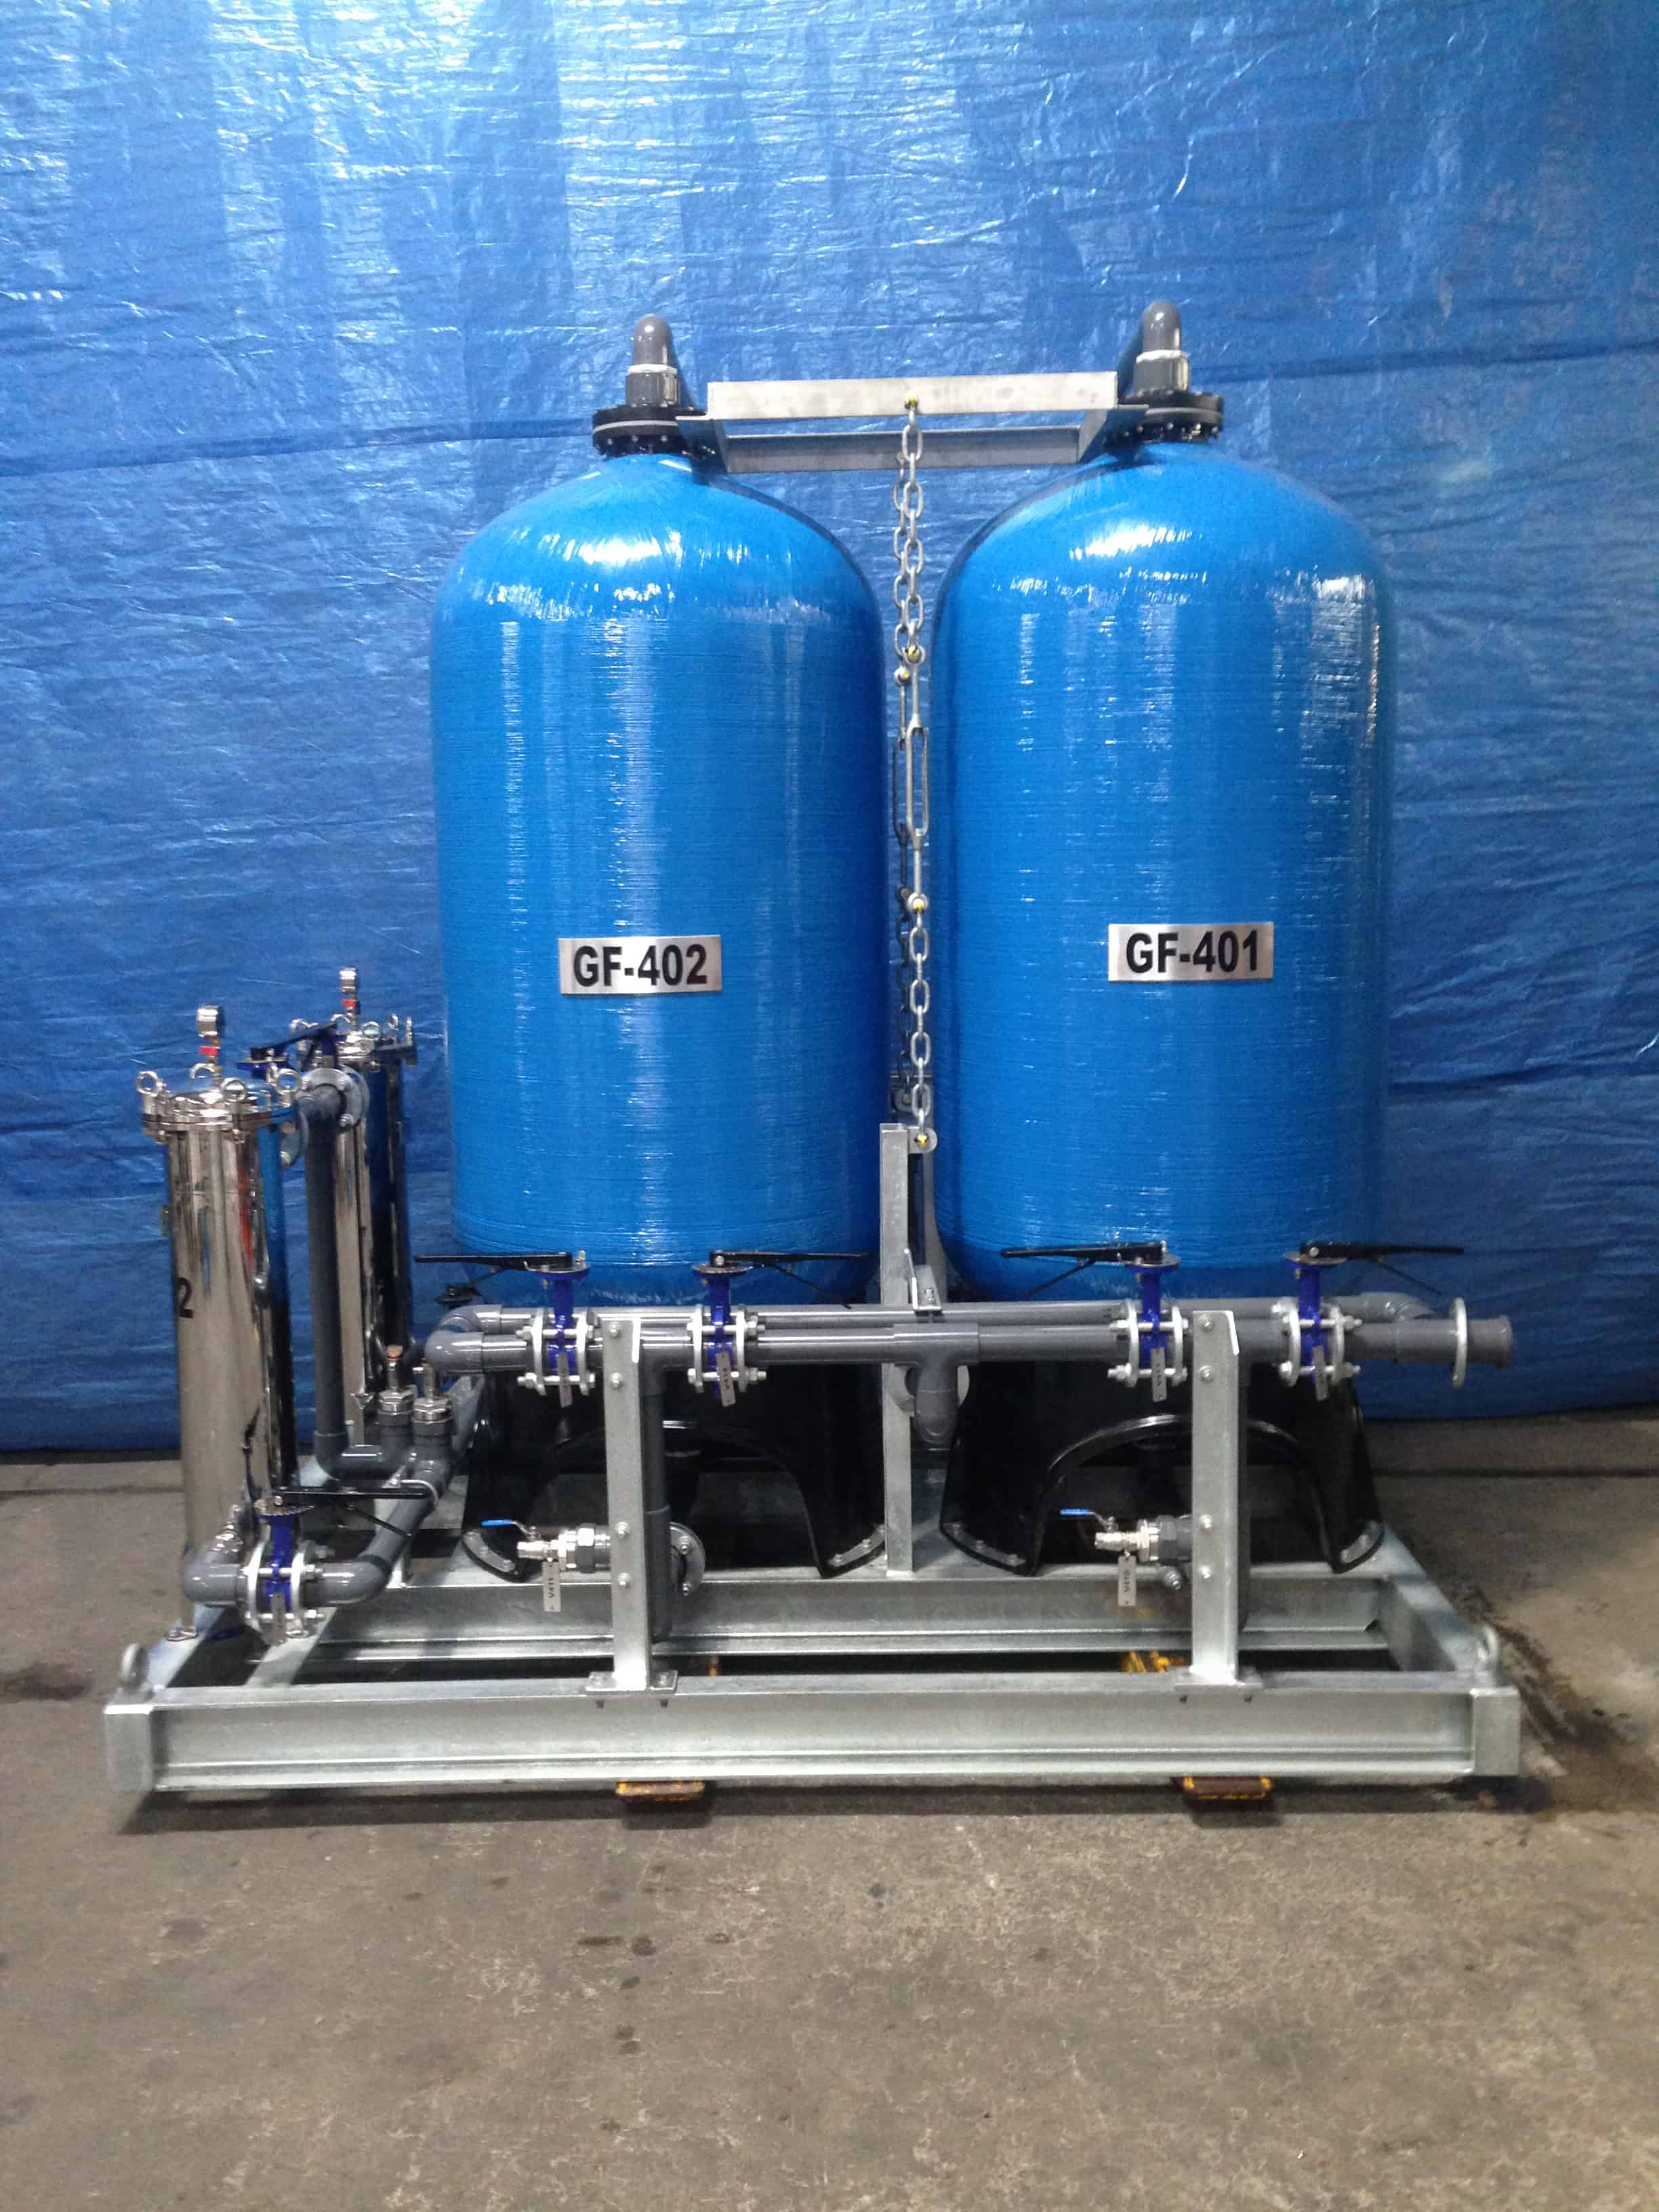 Wastewater filtration and polishing systems